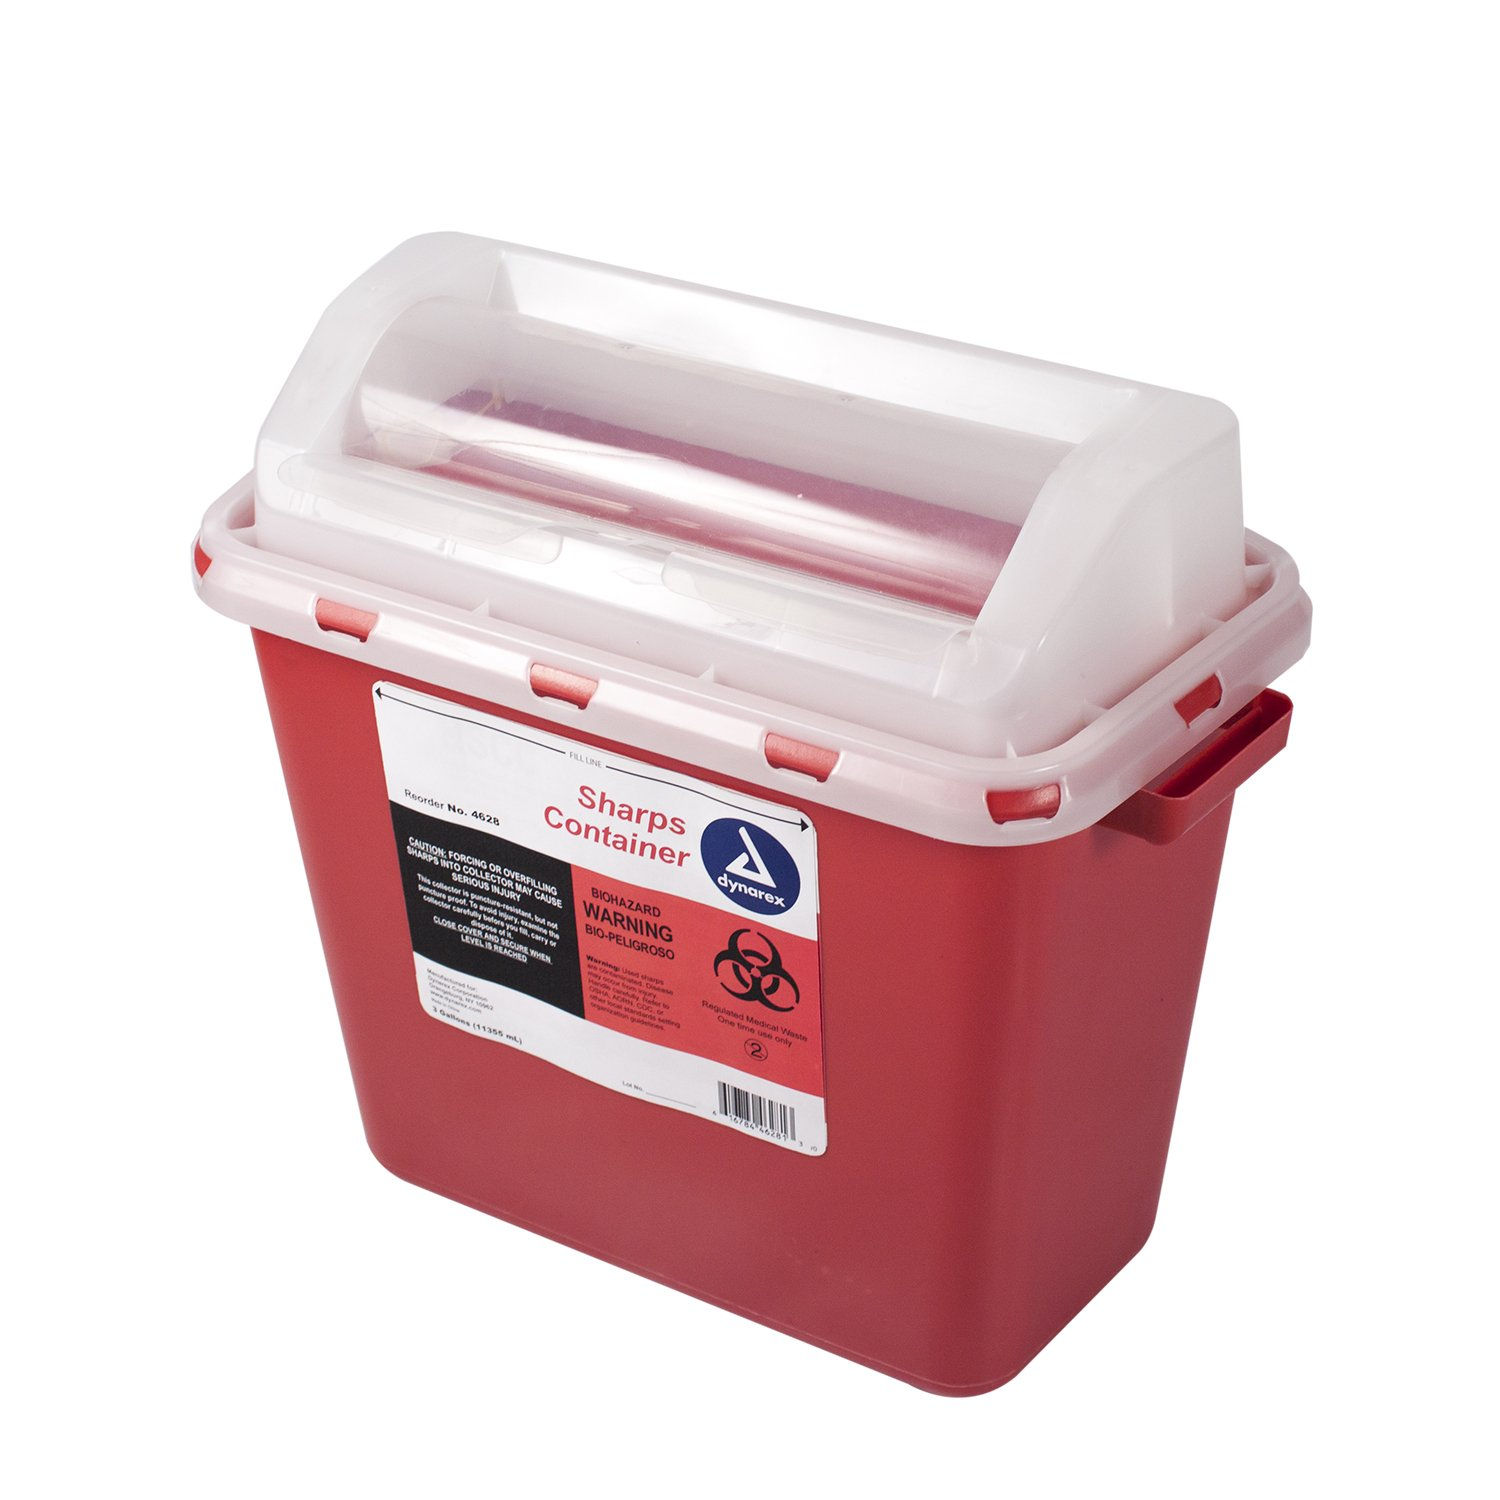 Dynarex Sharps Container - Biohazard Multiple-Use Needle Disposable - Puncture Resistant - One Handed Use - 3 Gallon